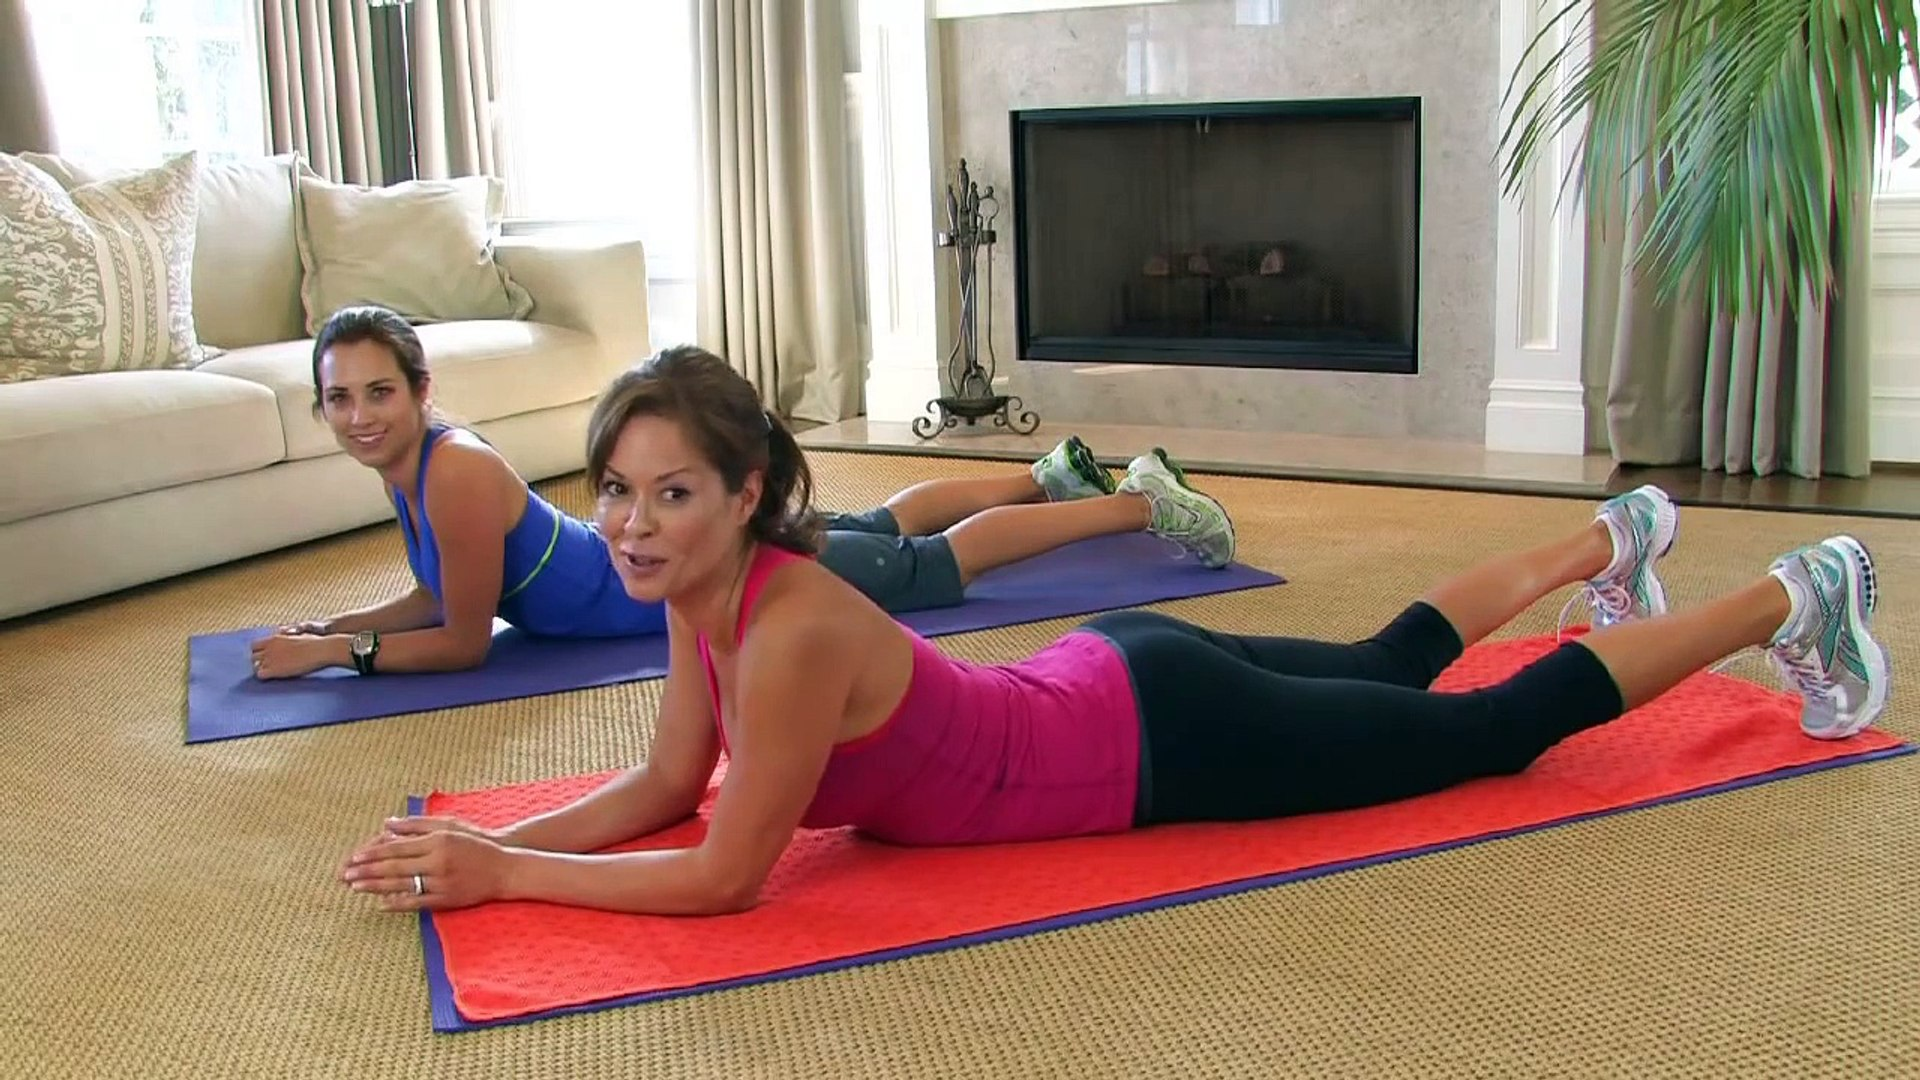 Working Your Core_ How to Do the Plank - Health & Fitness - ModernMom